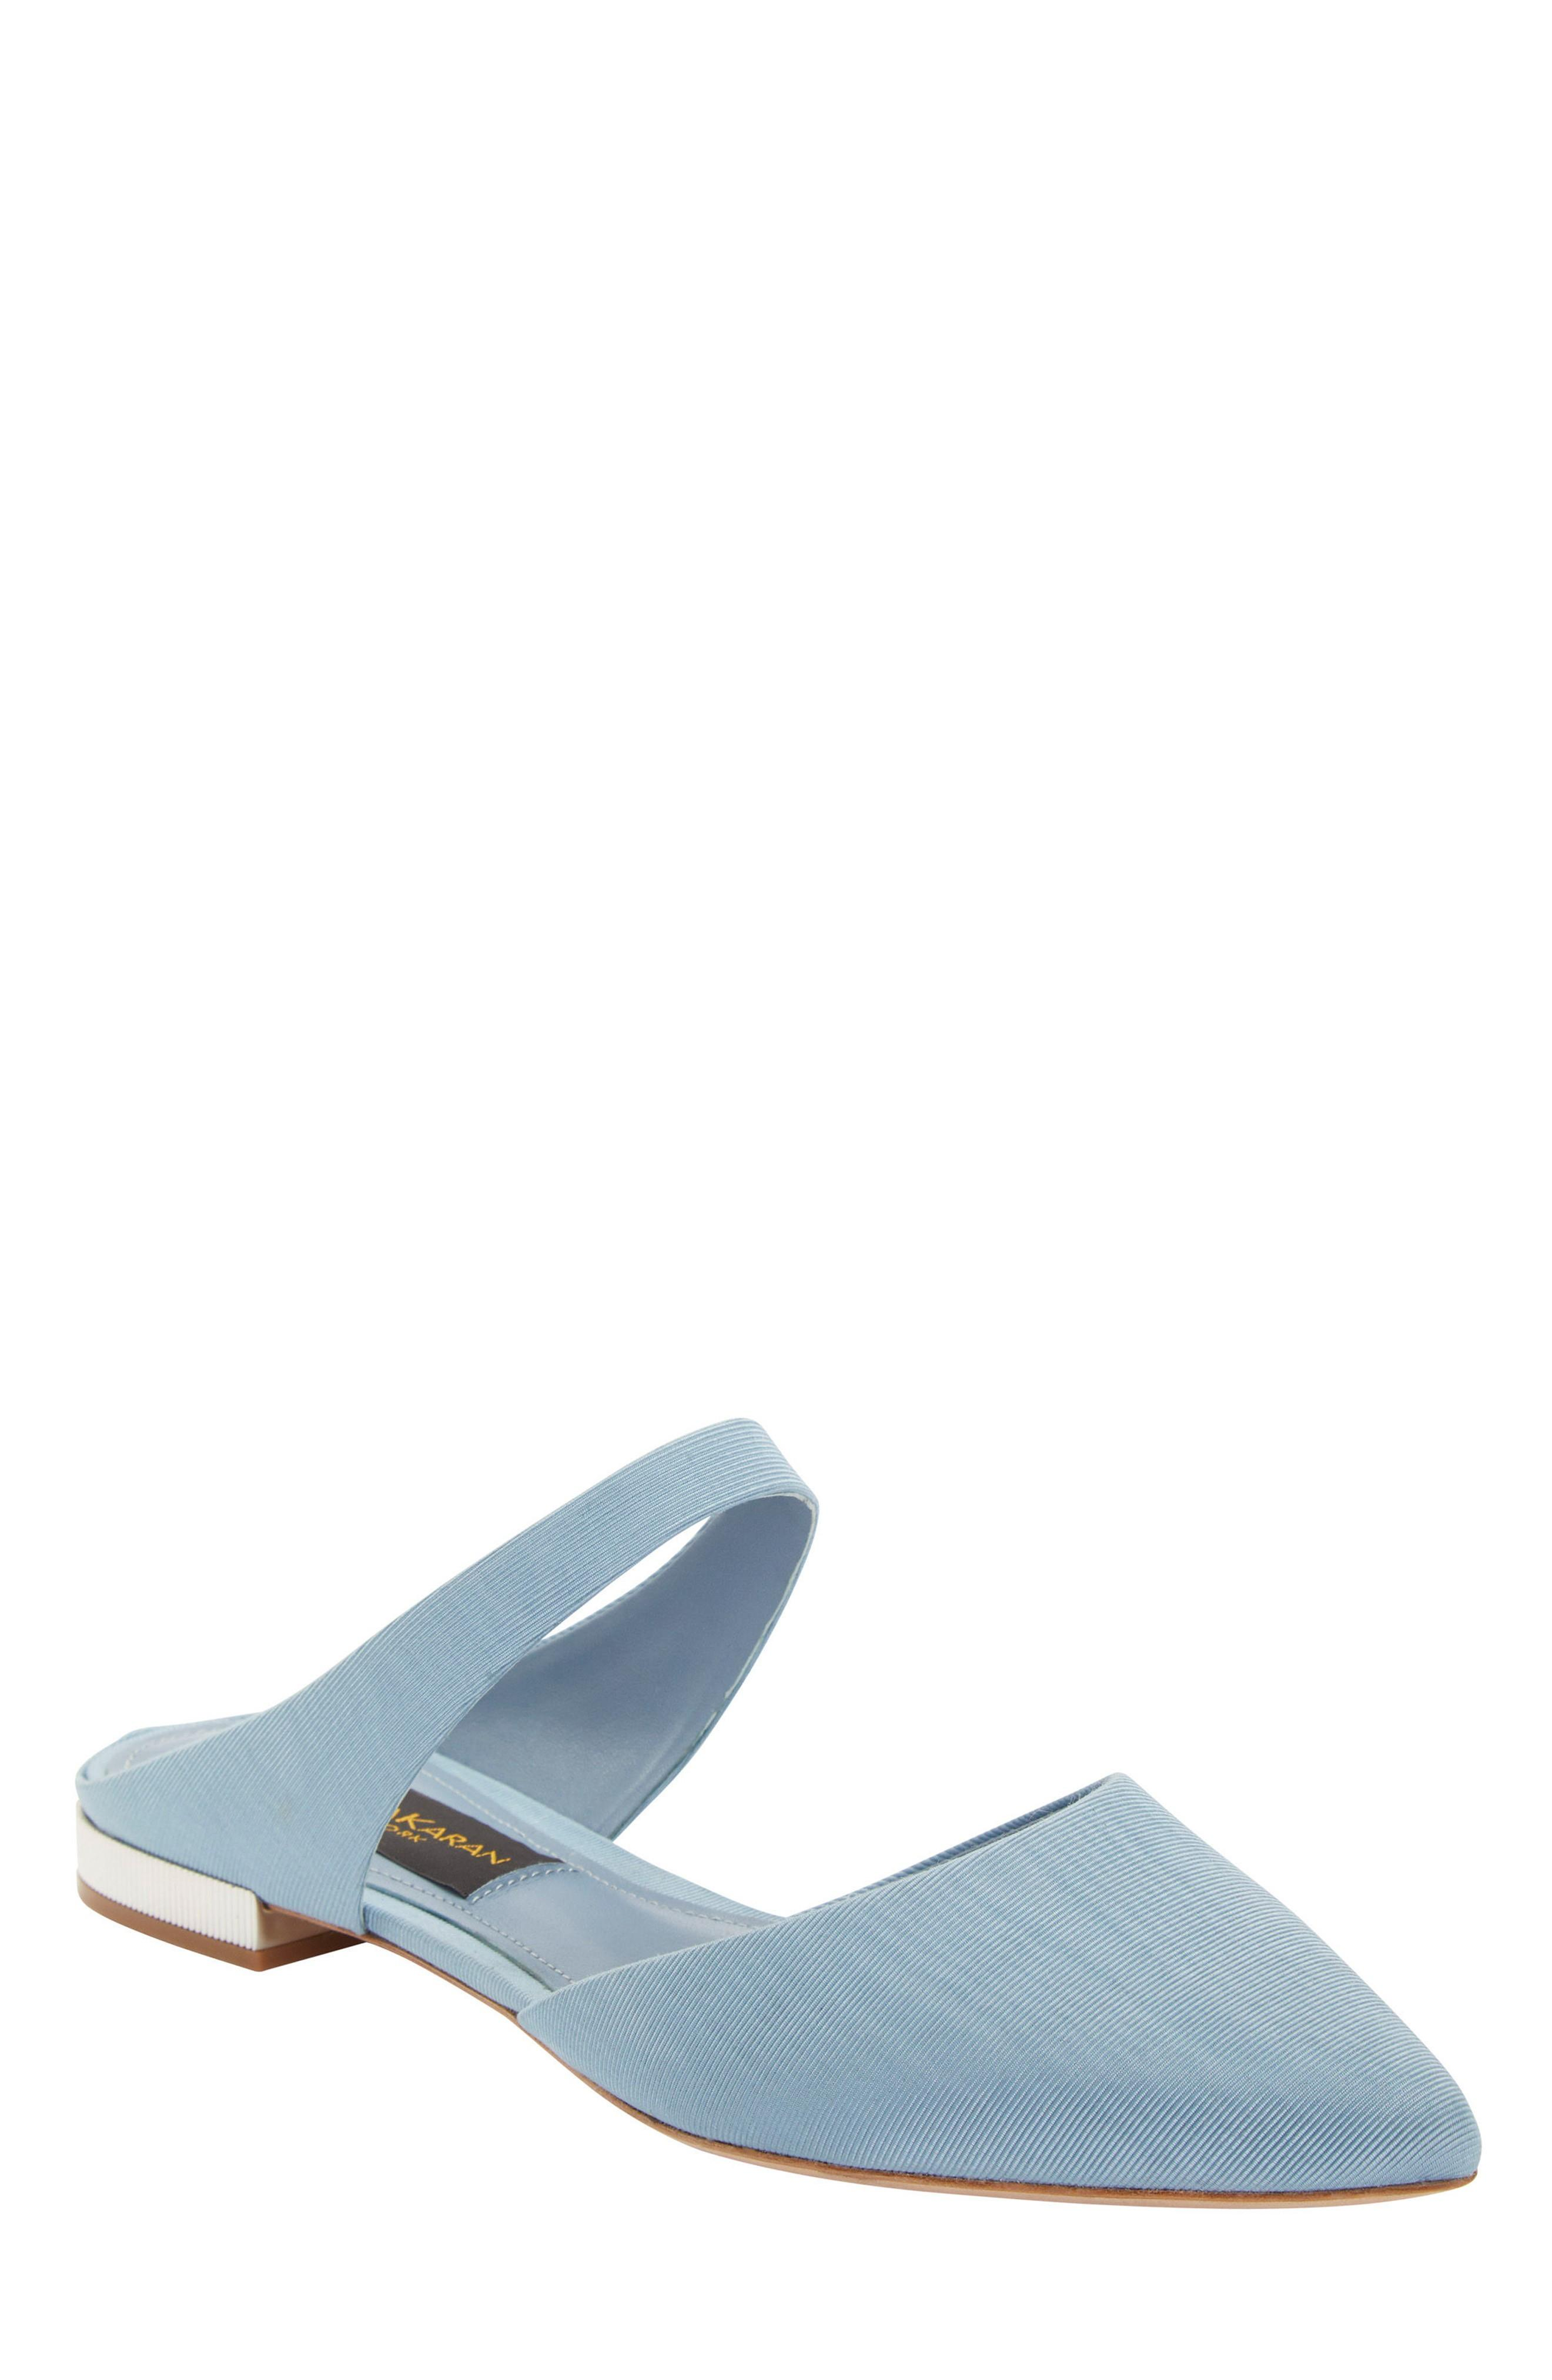 659b97c9c62a6 Donna Karan Paris Pointy Toe Mule in Chambray Leather